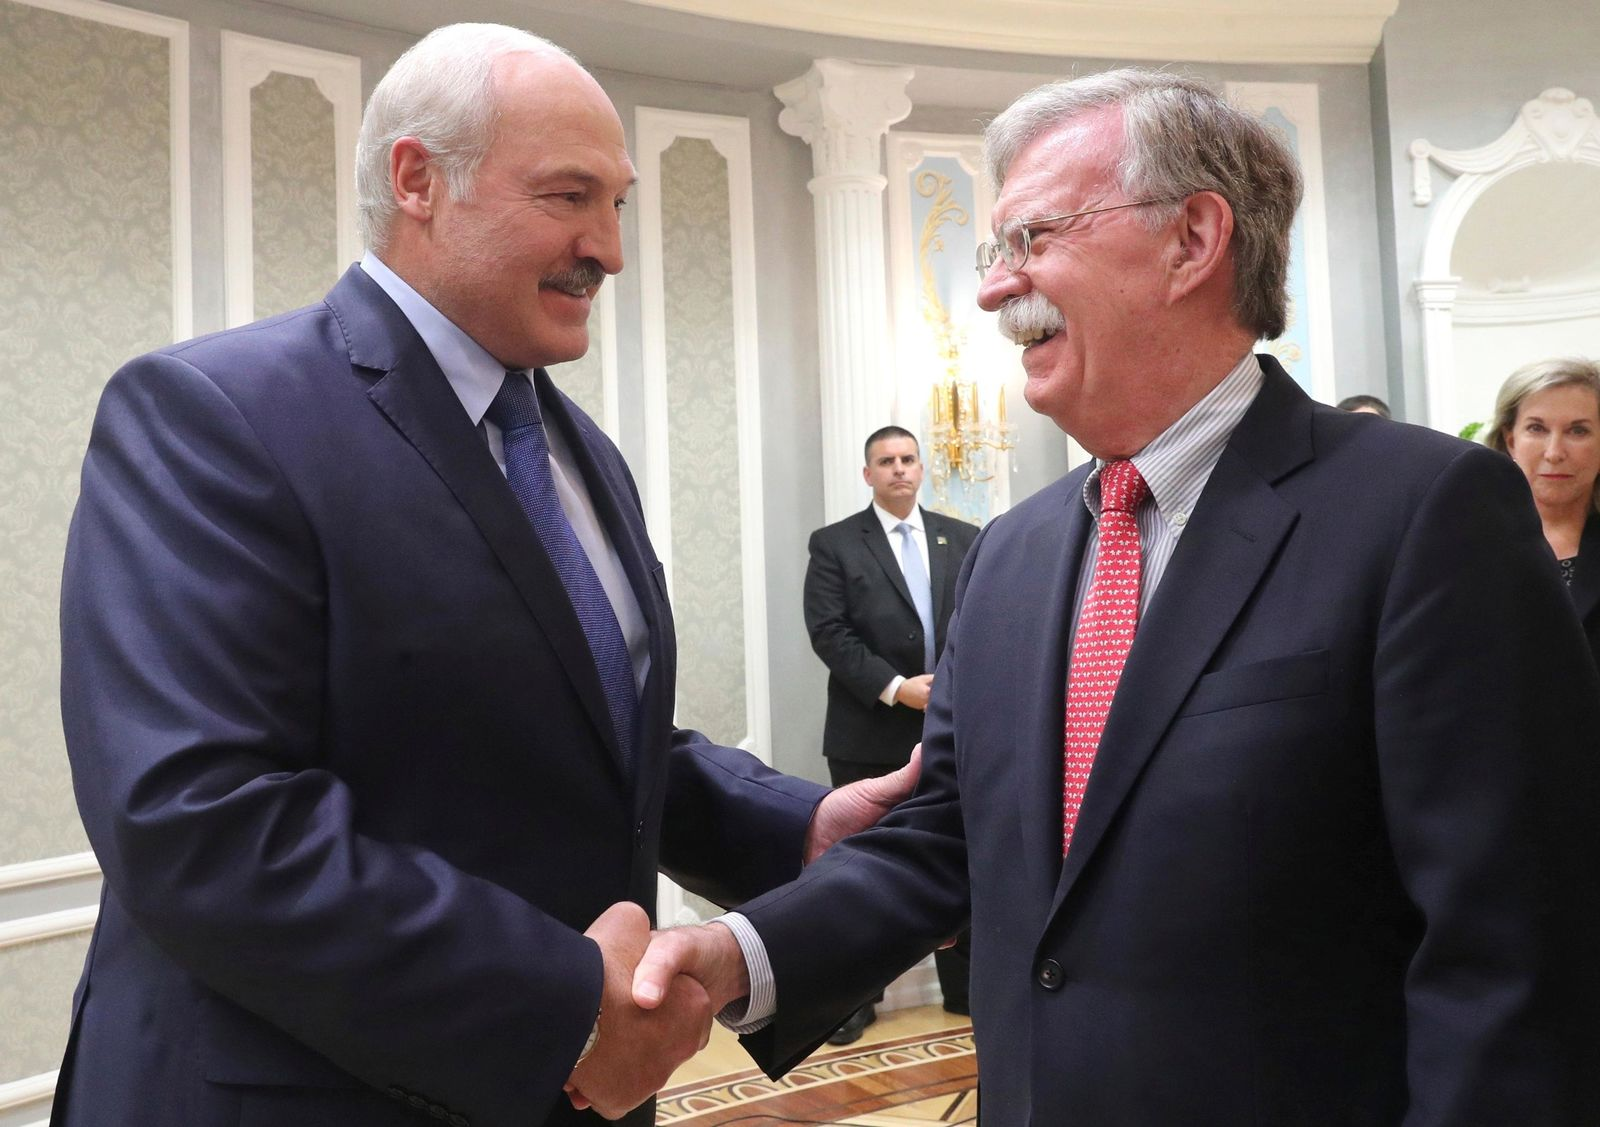 John Bolton, US National Security Advisor, right, is welcomed by Belarusian President Alexander Lukashenko during their meeting in Minsk, Belarus, Thursday, Aug. 29, 2019. (Nikolai Petrov/BelTA Pool Photo via AP)